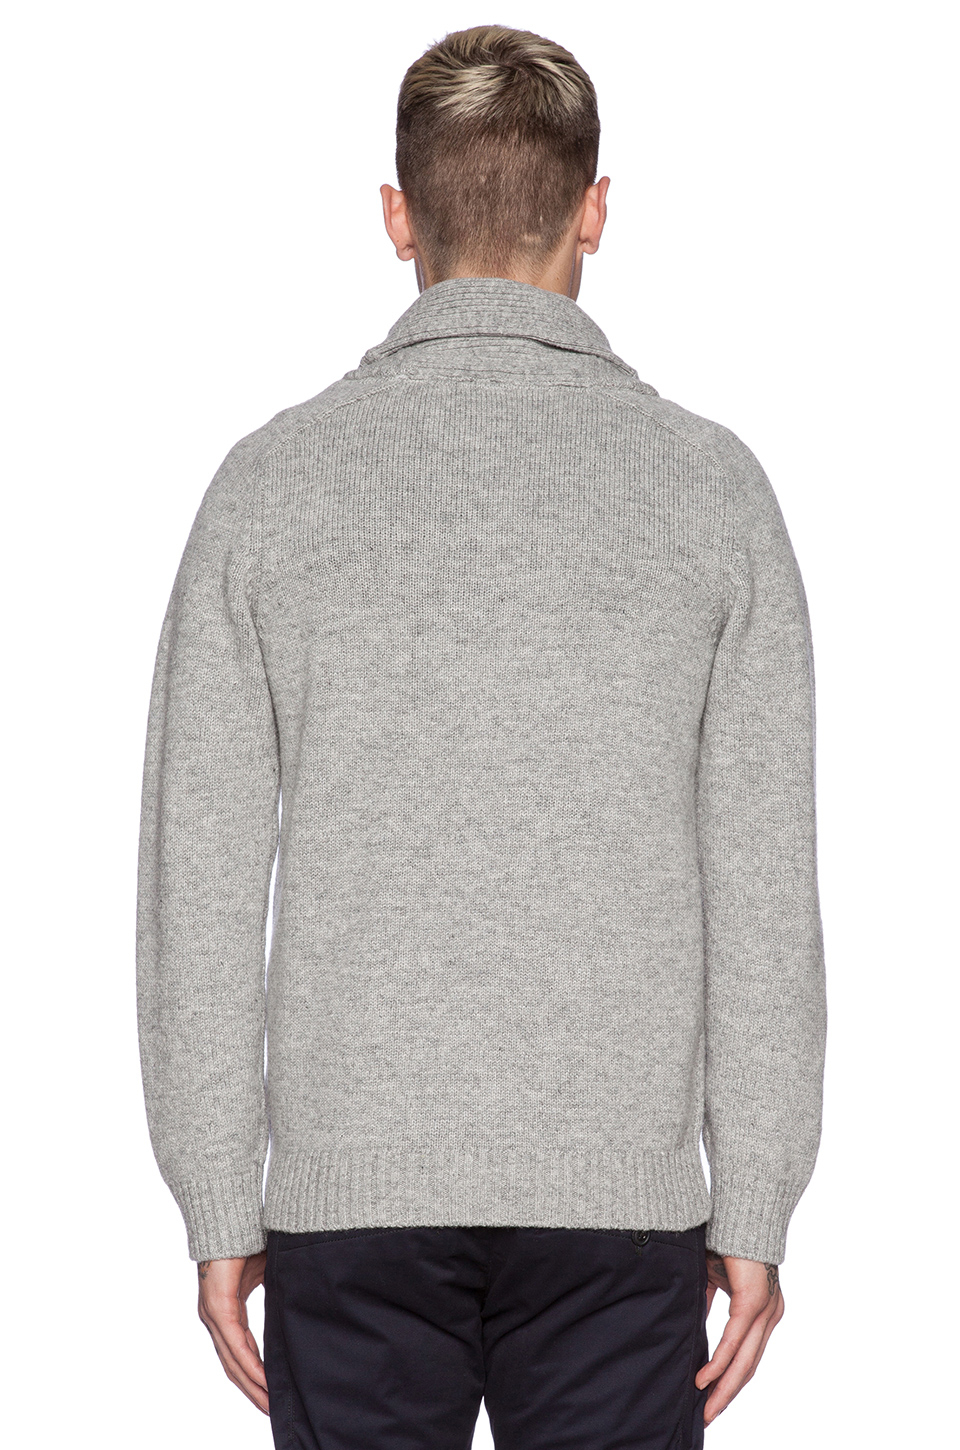 lyst g star raw gammit shawl collar sweater in gray for men. Black Bedroom Furniture Sets. Home Design Ideas